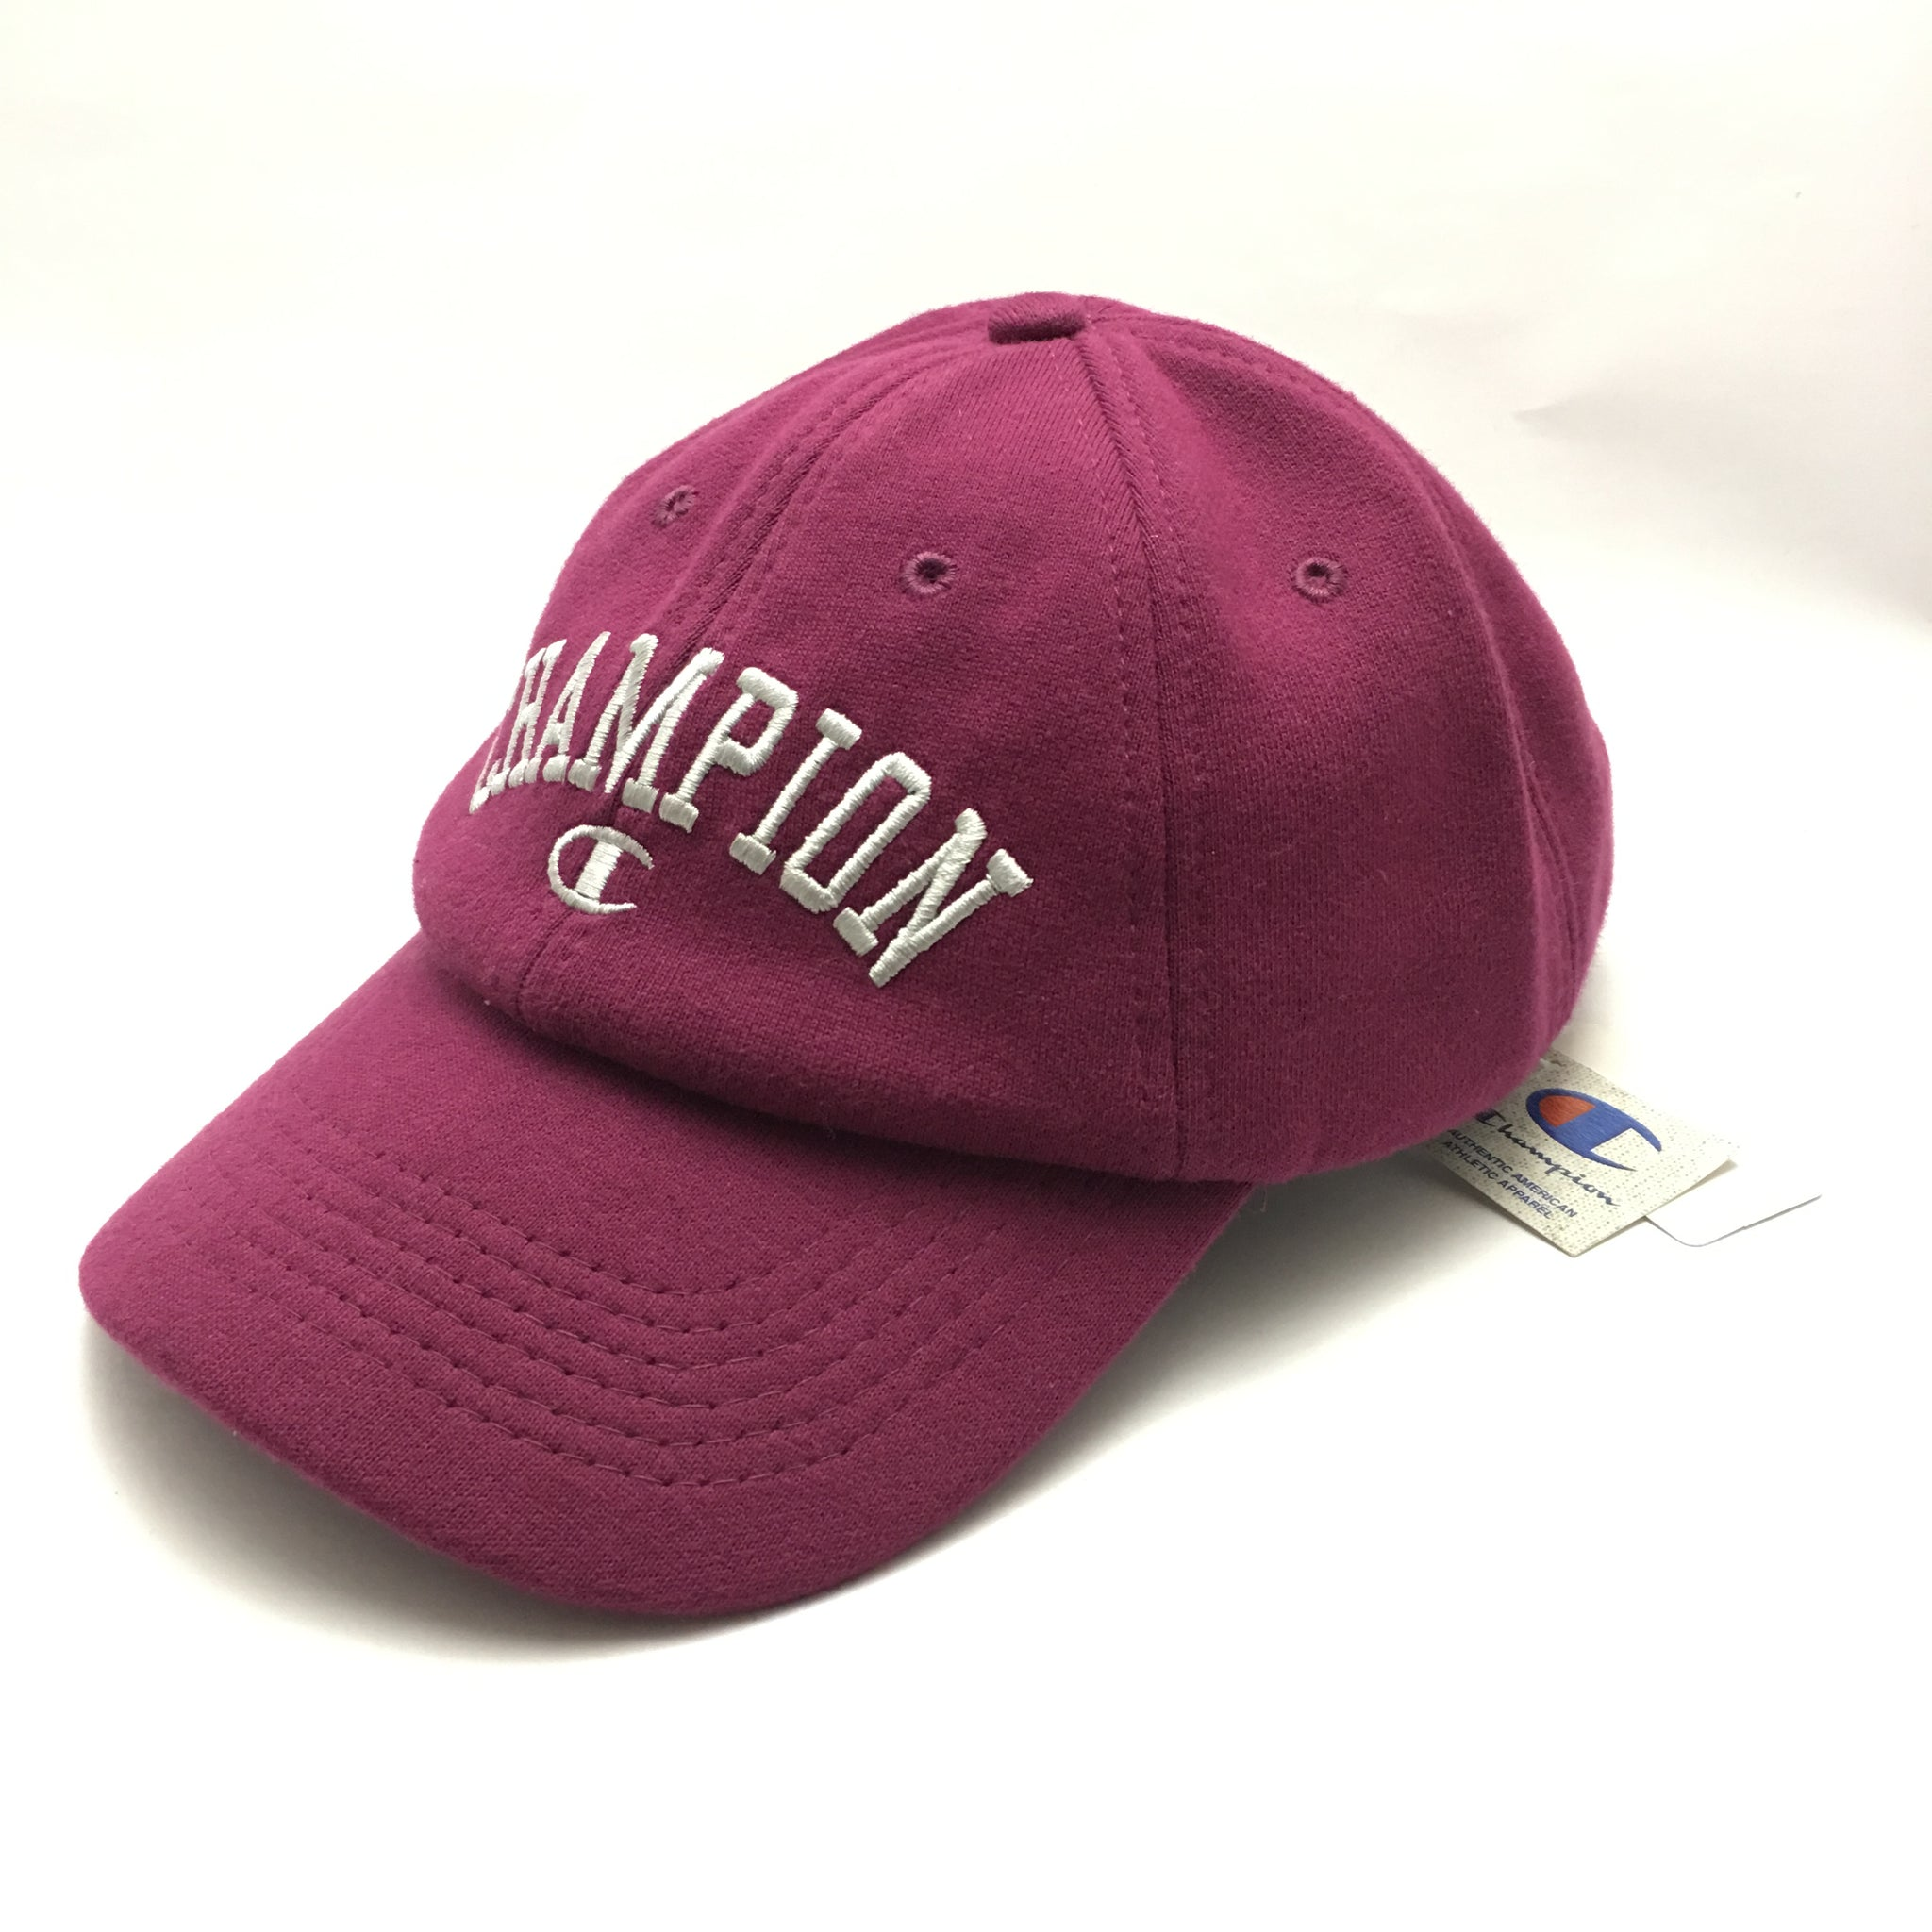 296a14c568b ... Champion Reverse Weave Heather Cap (Maroon)(Limited Edition)